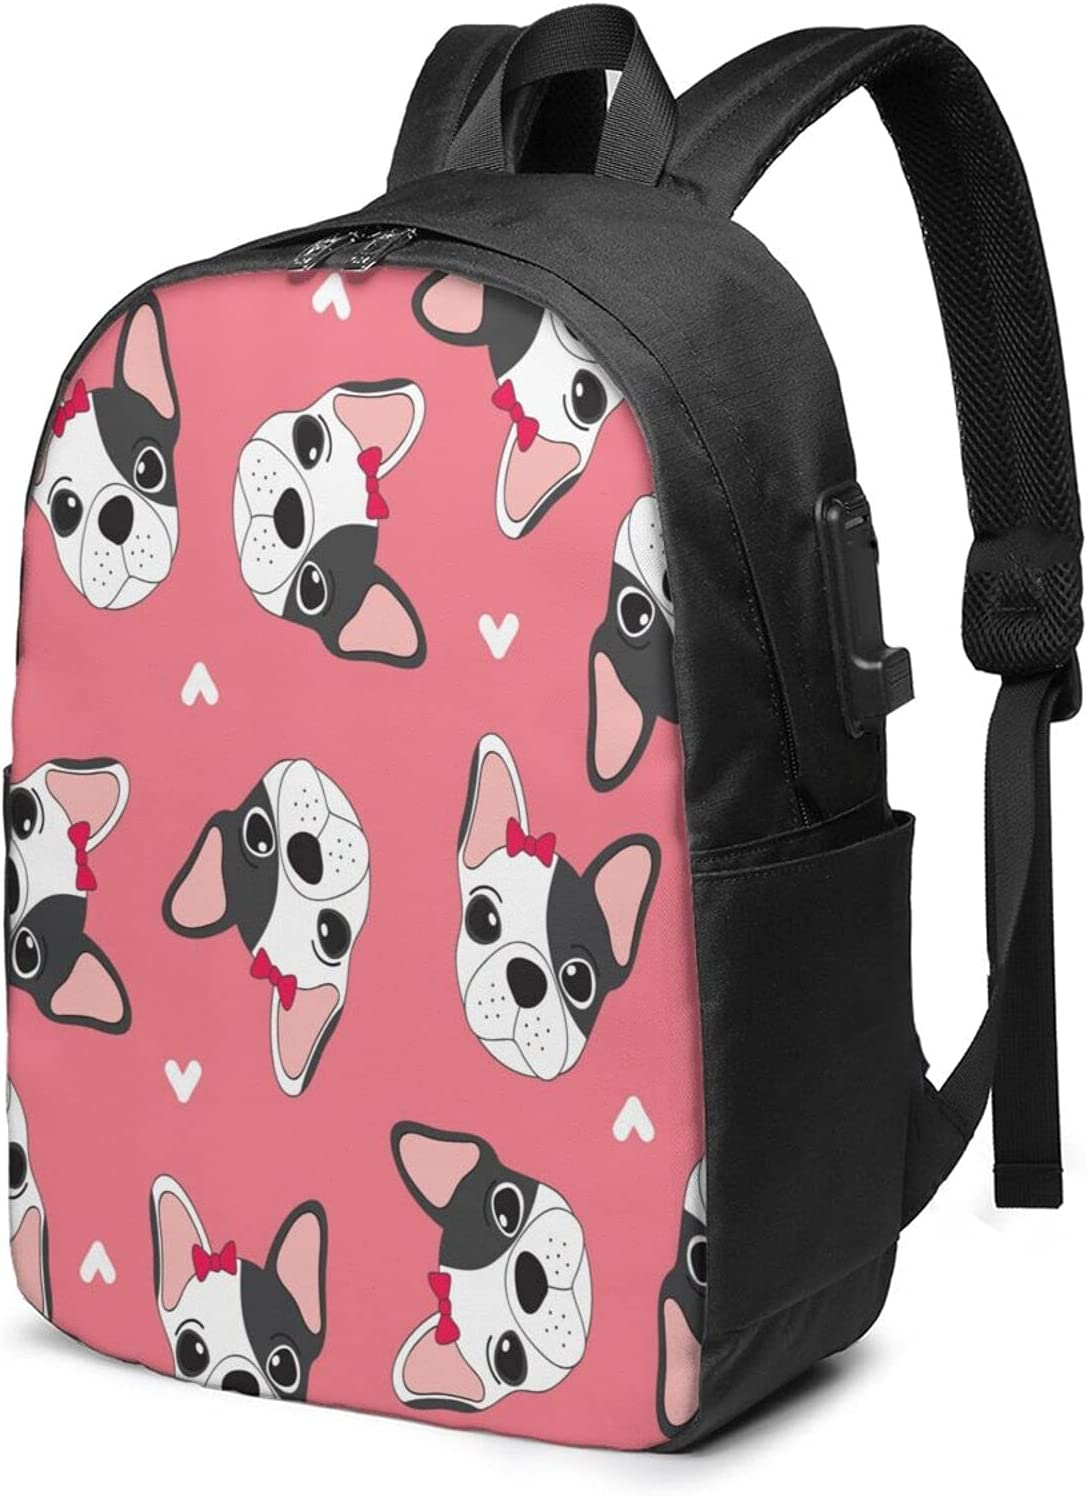 Cartoon Cute Dog Laptop Backpack For Usb 70% OFF Mesa Mall Outlet Daypack Boys with Ch